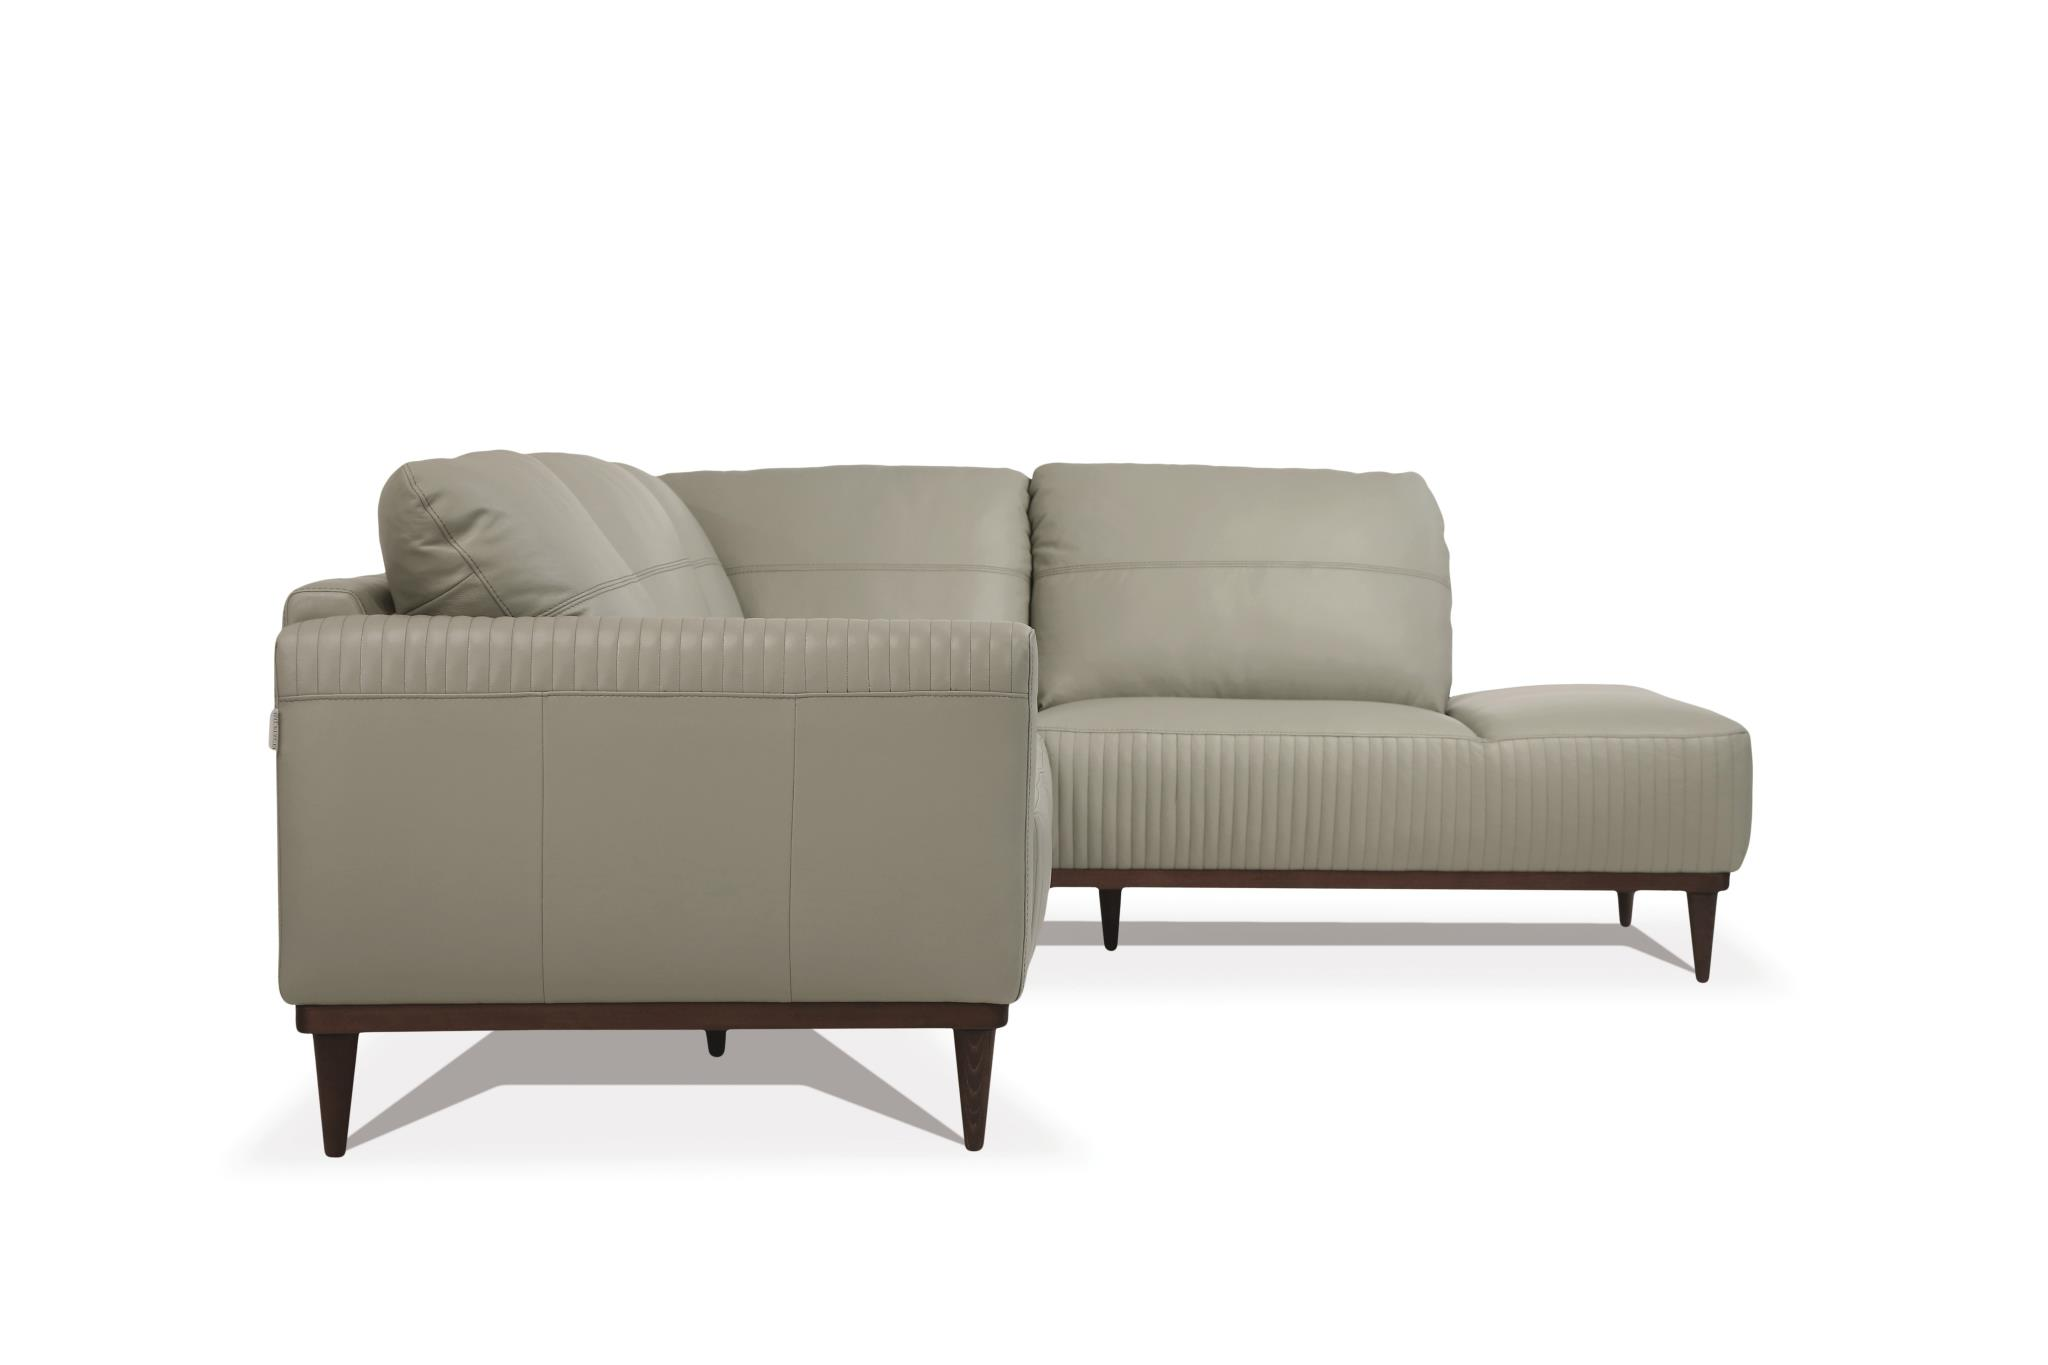 Airy Green Sectional Sofa w/ Right Facing Chaise Side